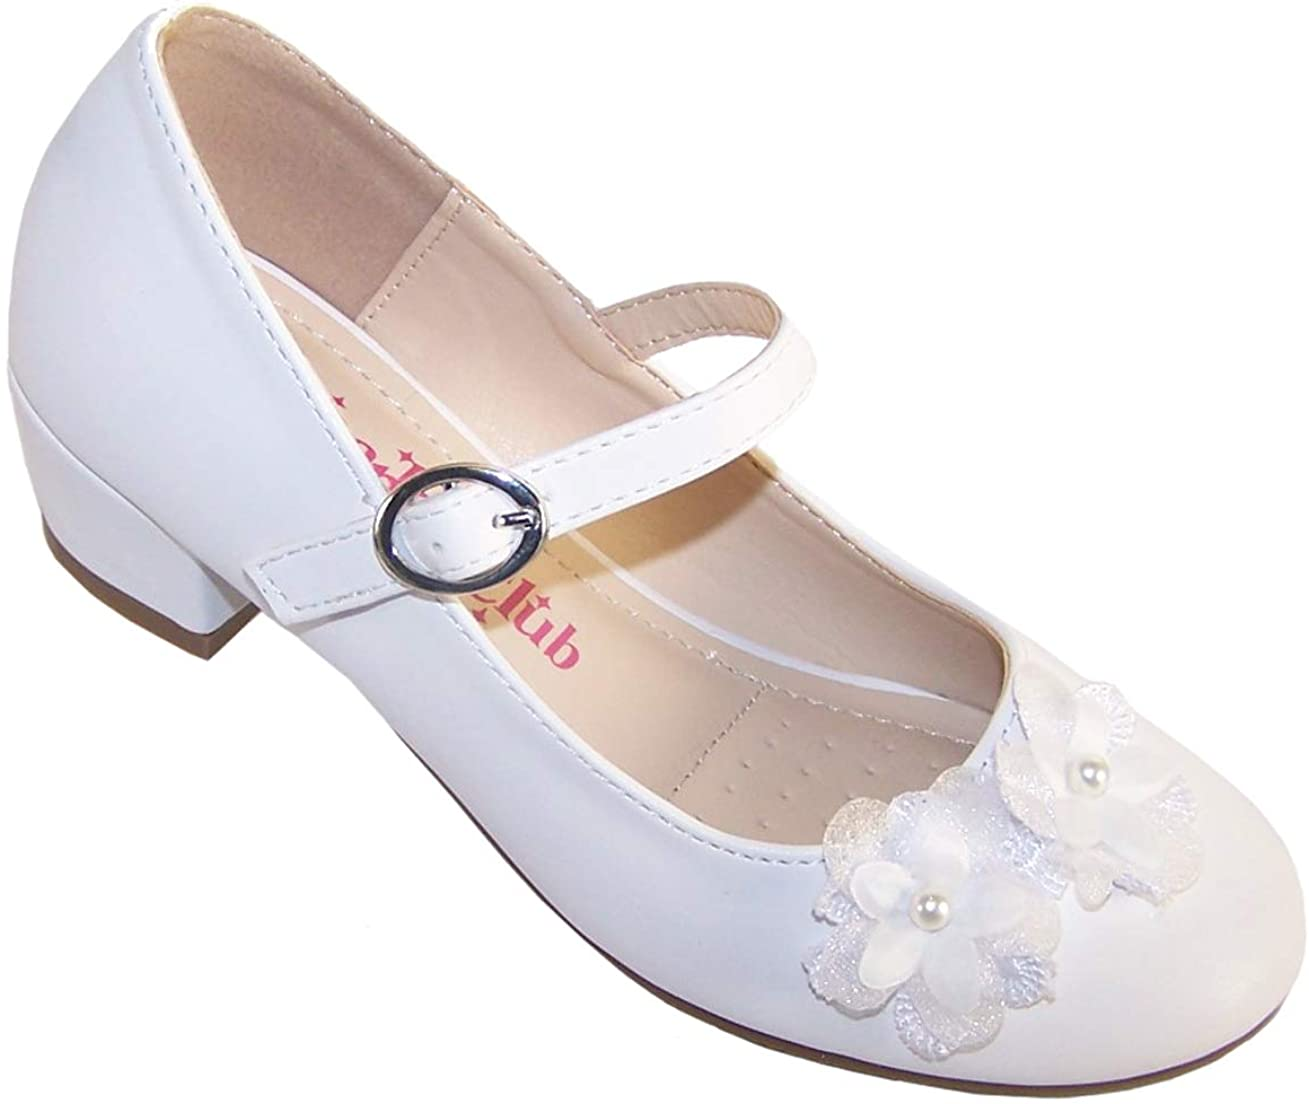 WHITE SATIN BRIDESMAID//COMMUNION SHOES GIRLS UK SIZE 12 BUT ARE A SMALL FIT